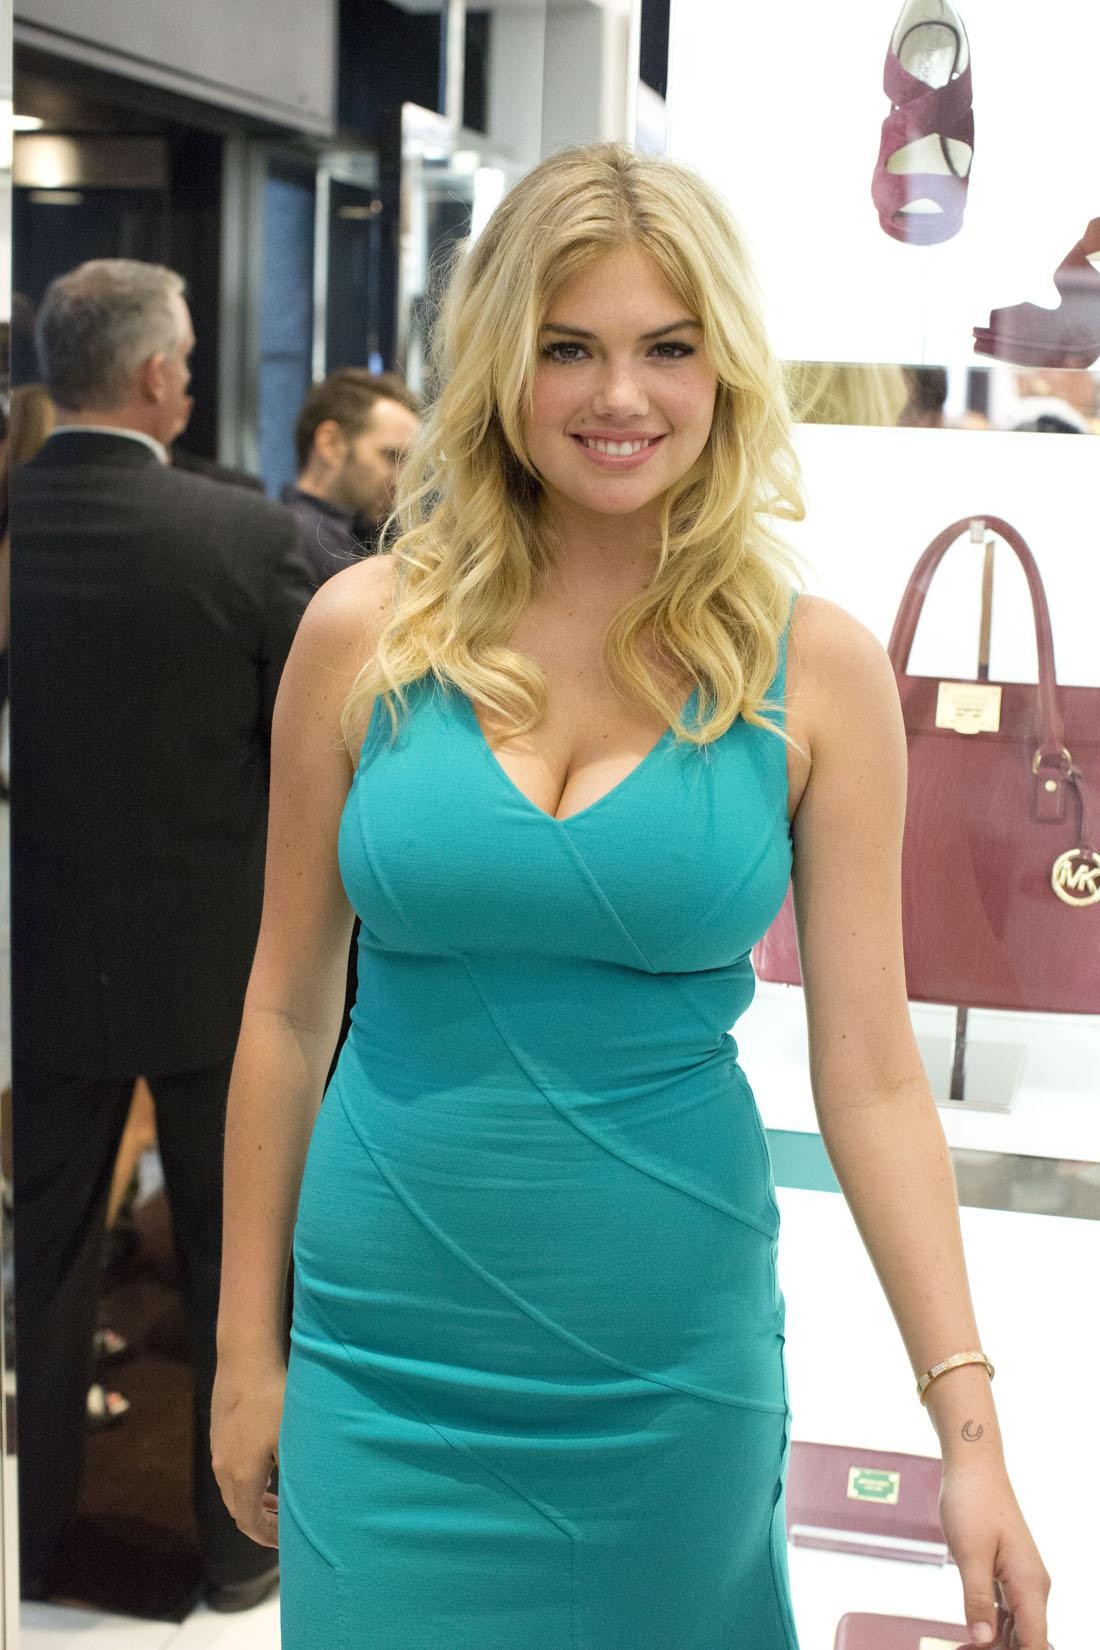 Kate Upton on Smile